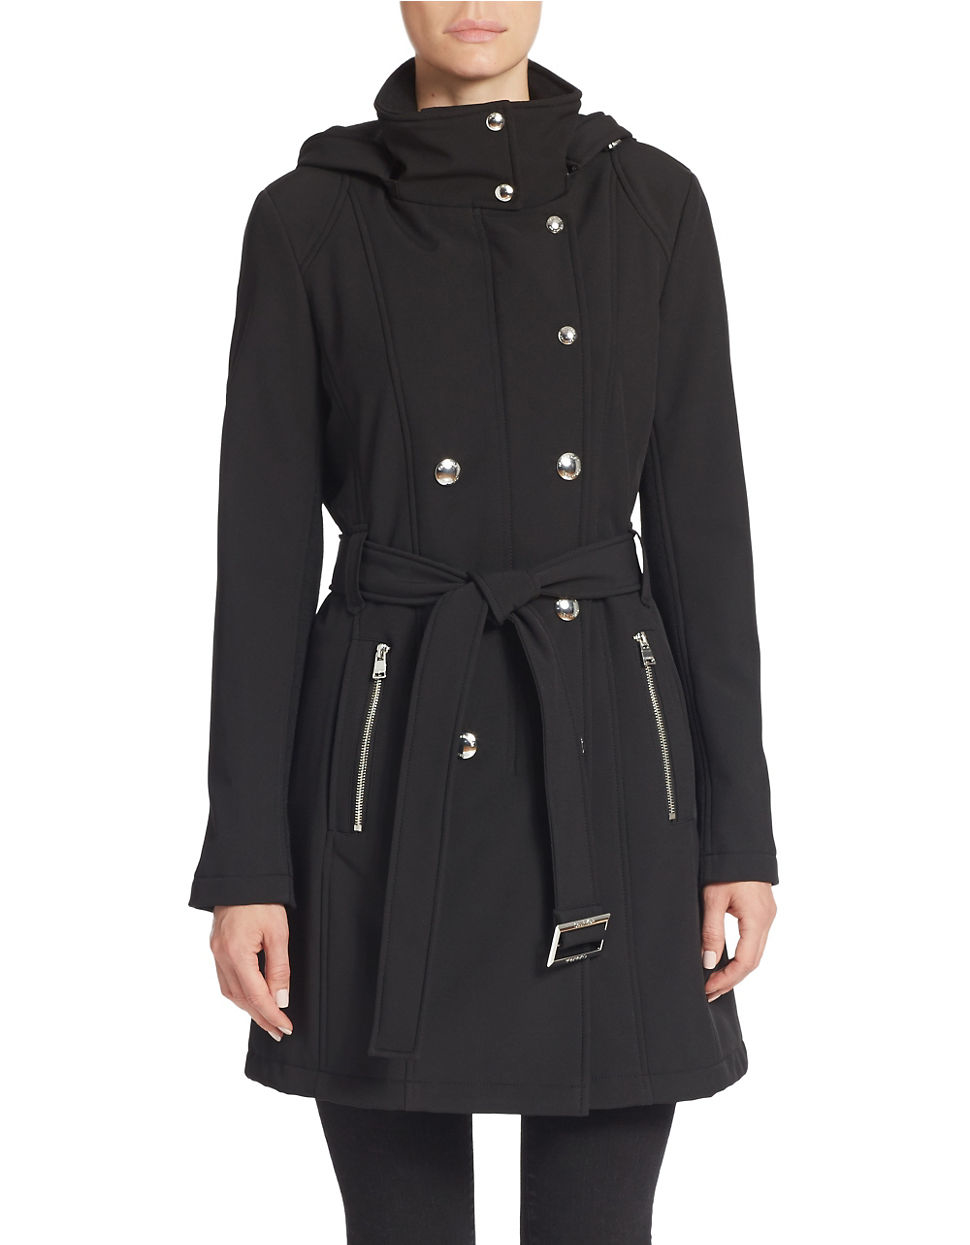 A contemporary classic inspired by the essential trench coat in a modern design featuring characteristic details in an urban navy colour. Vent at back D-ring buckle on belt Concealed double-breasted button closure Welt pockets Epaulettes Length of coat: ,5 cm .